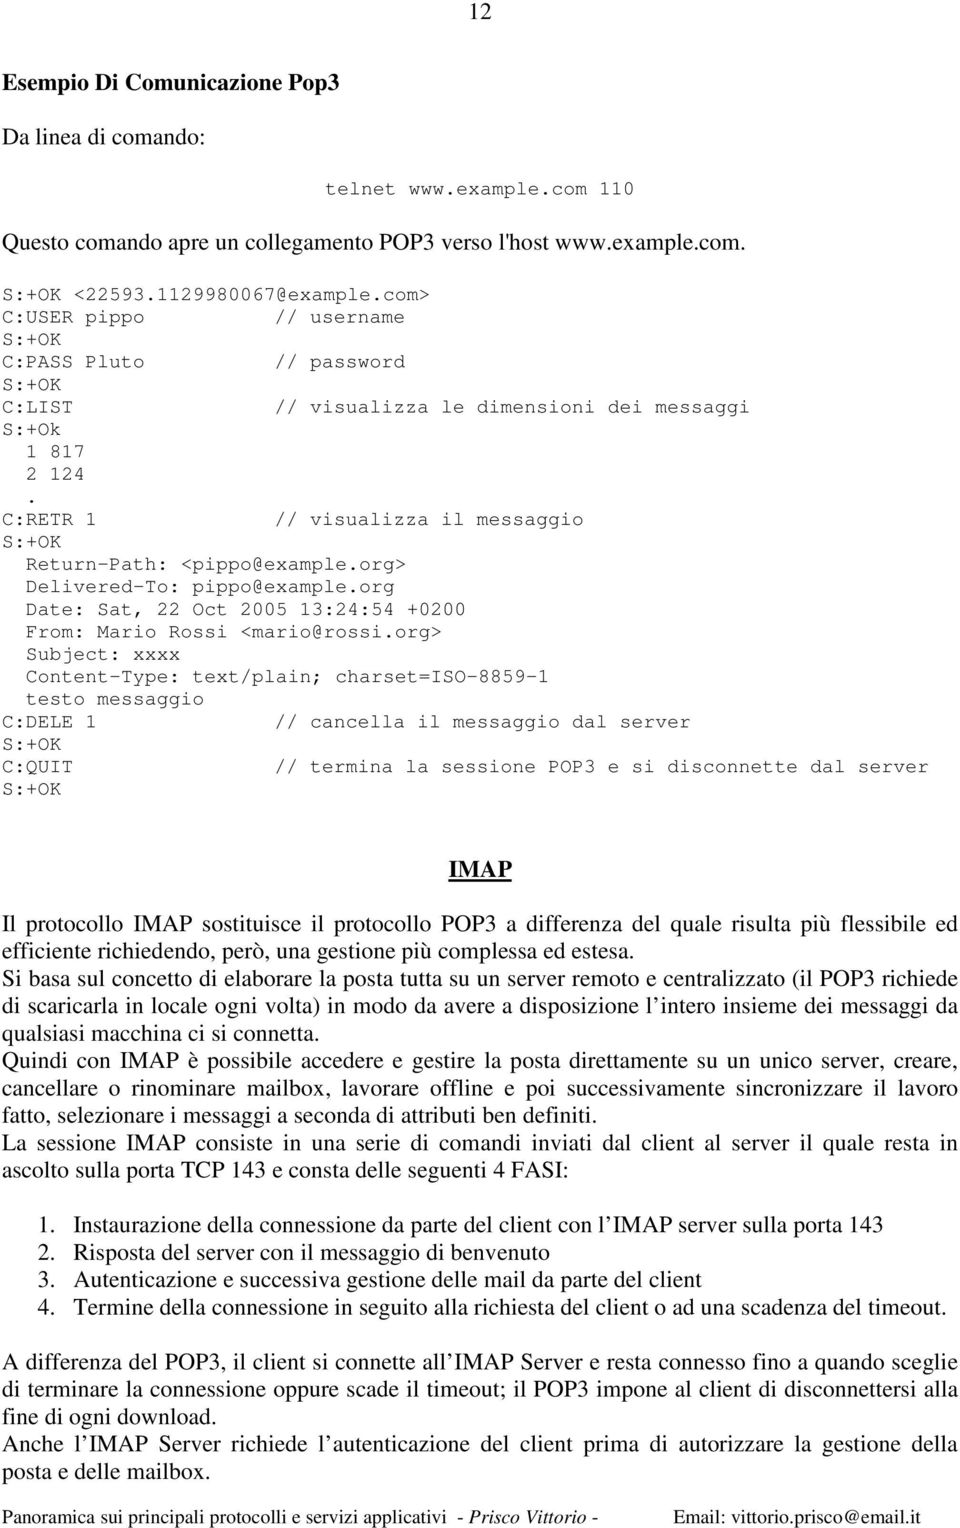 C:RETR 1 // visualizza il messaggio S:+OK Return-Path: <pippo@example.org> Delivered-To: pippo@example.org Date: Sat, 22 Oct 2005 13:24:54 +0200 From: Mario Rossi <mario@rossi.